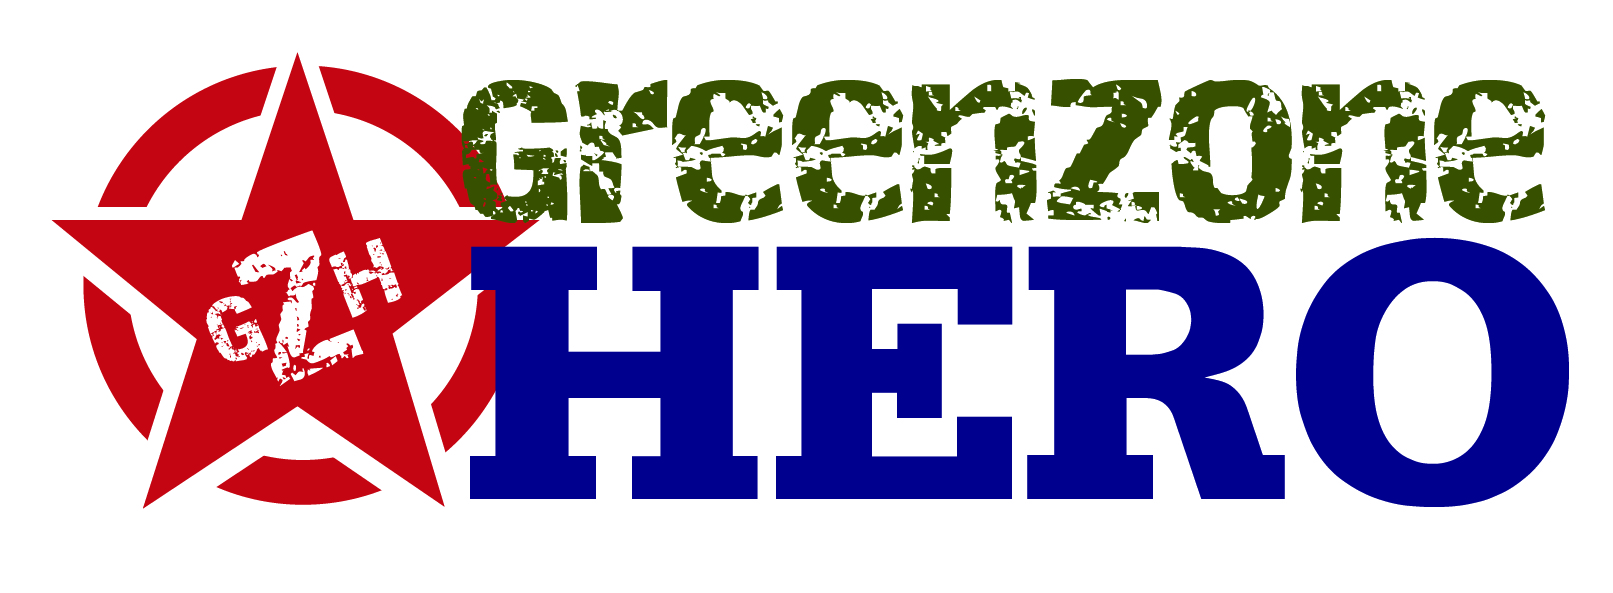 Image result for greenzone hero logo